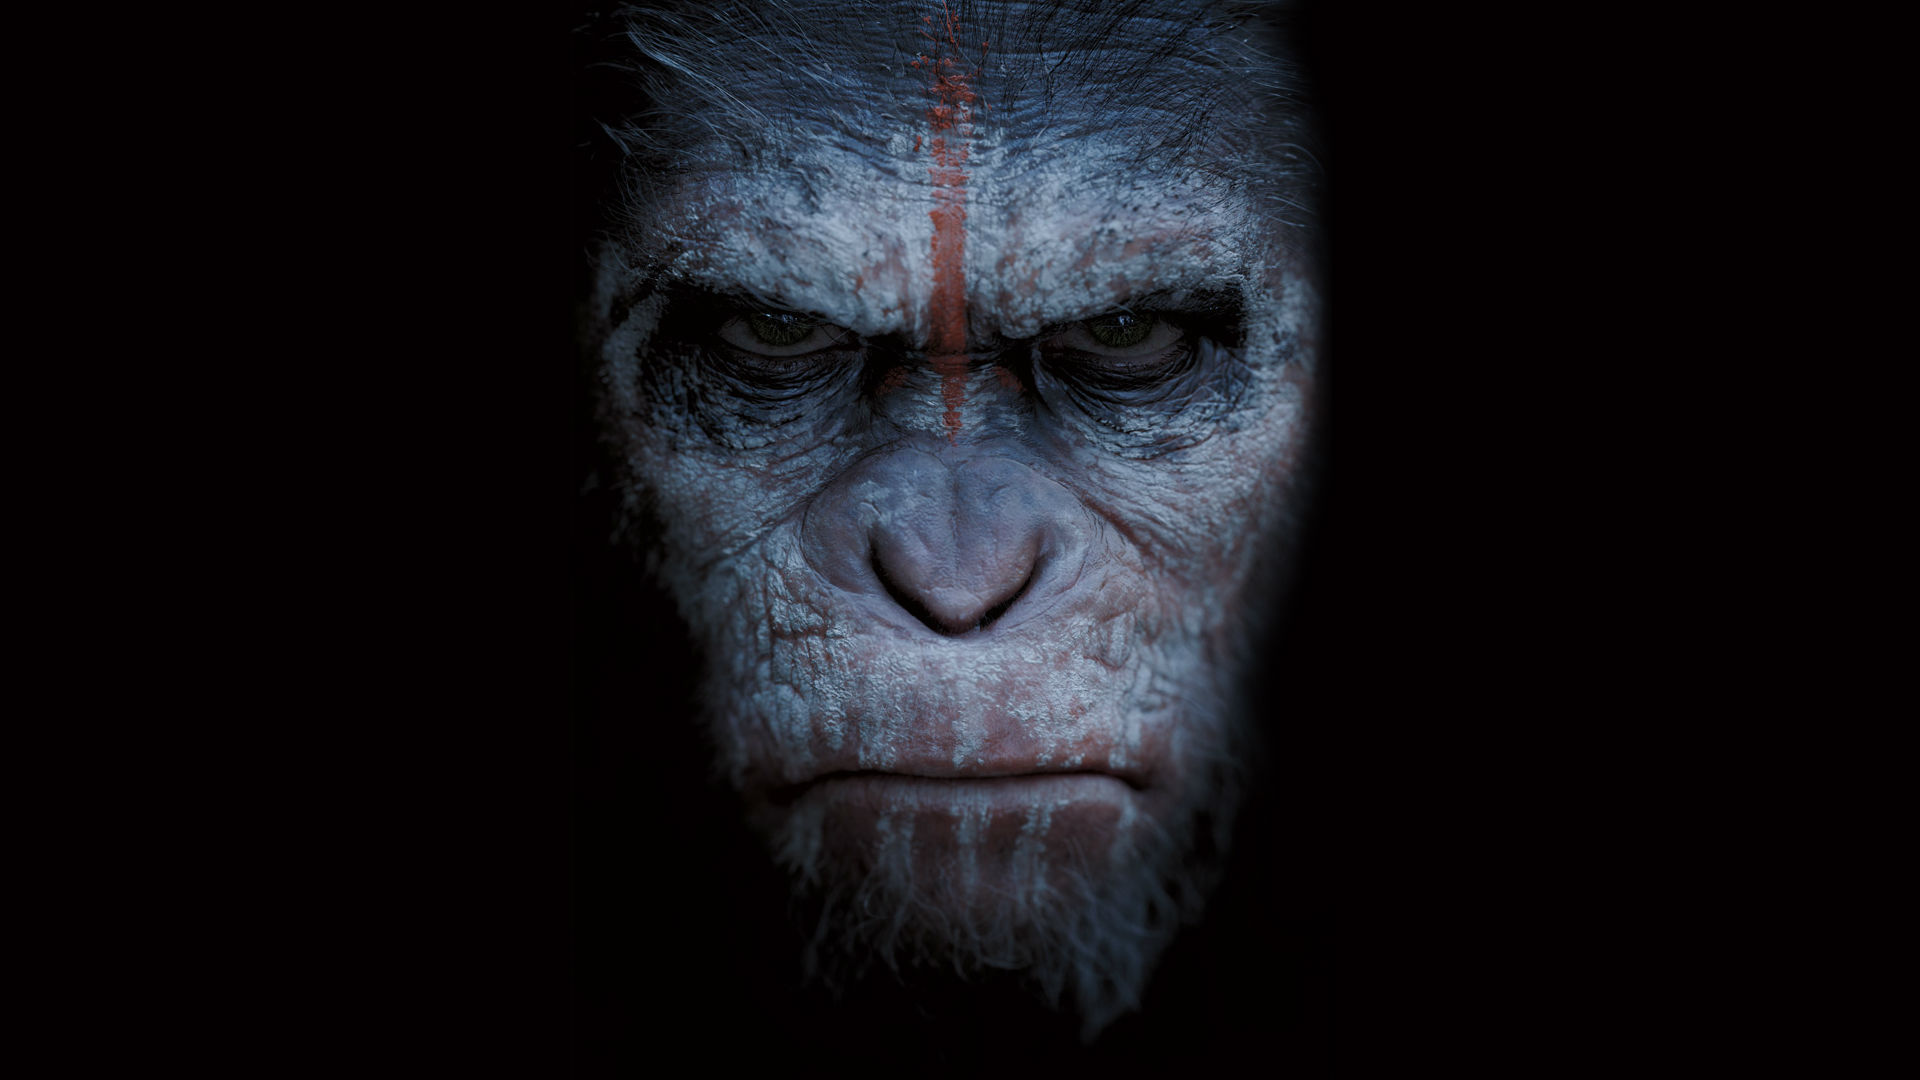 dawn of the planet of the apes wallpaper 33541